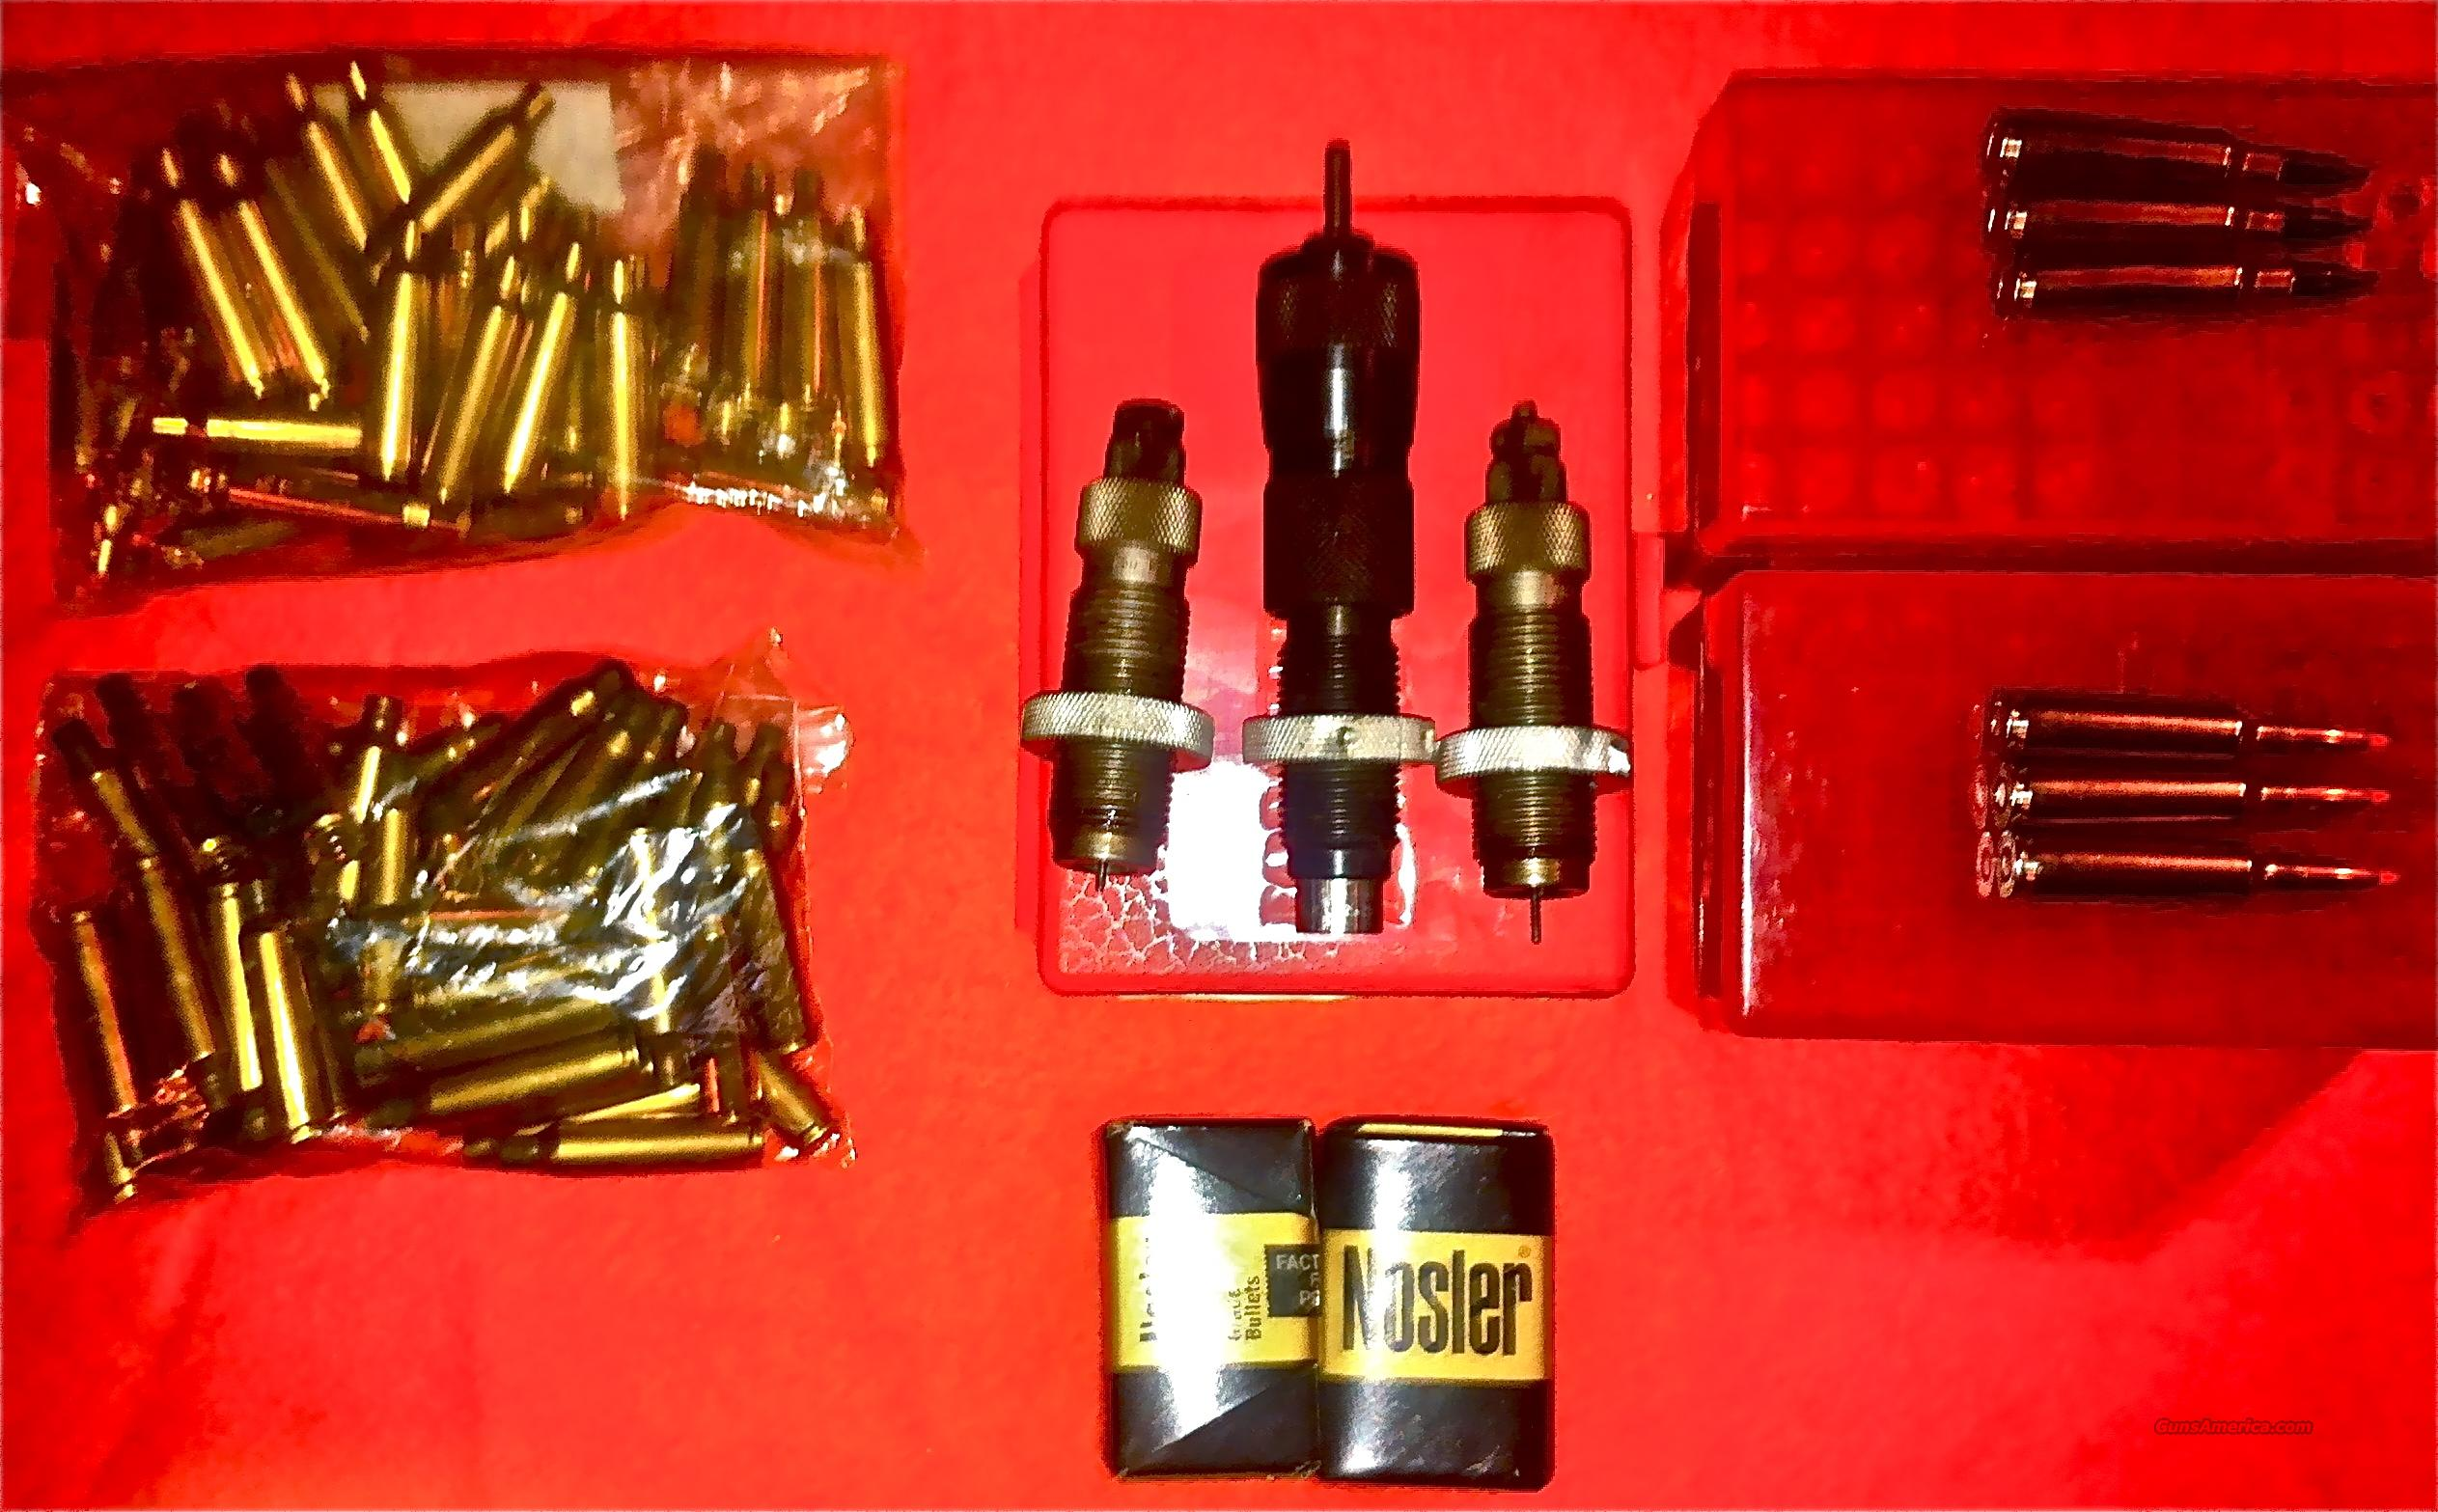 22-250 Forester 3 Die Set Components & Ammo Package  Non-Guns > Reloading > Equipment > Metallic > Dies